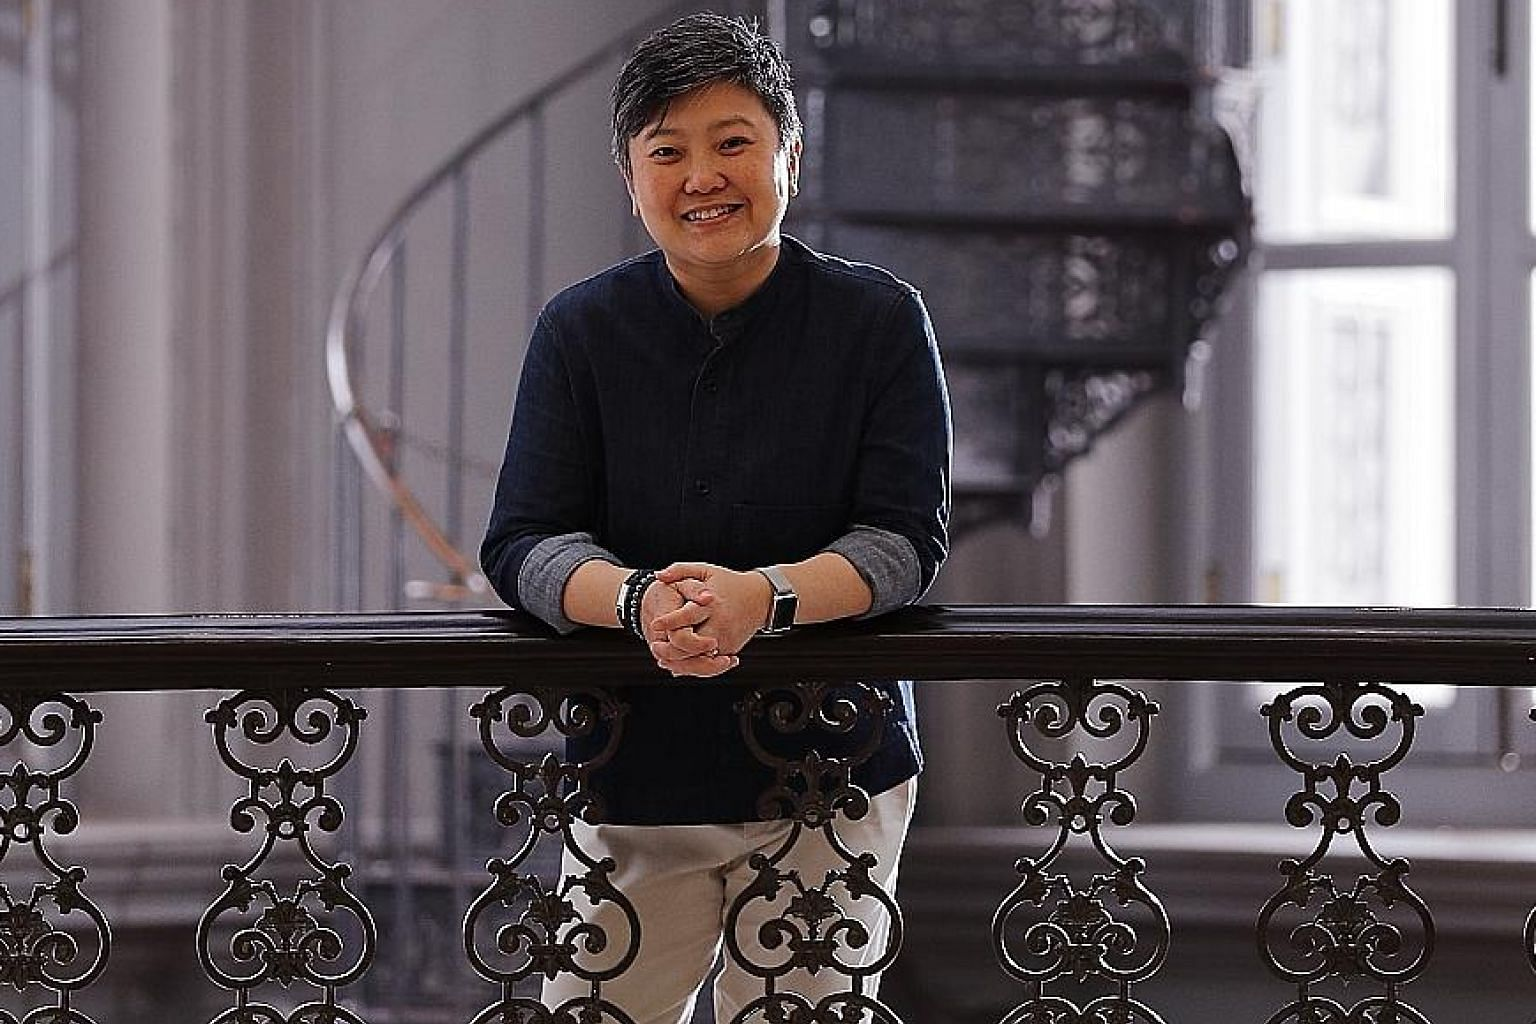 Ms Angelita Teo, director of the National Museum of Singapore, will become director of the Olympic Foundation for Culture and Heritage starting in October.